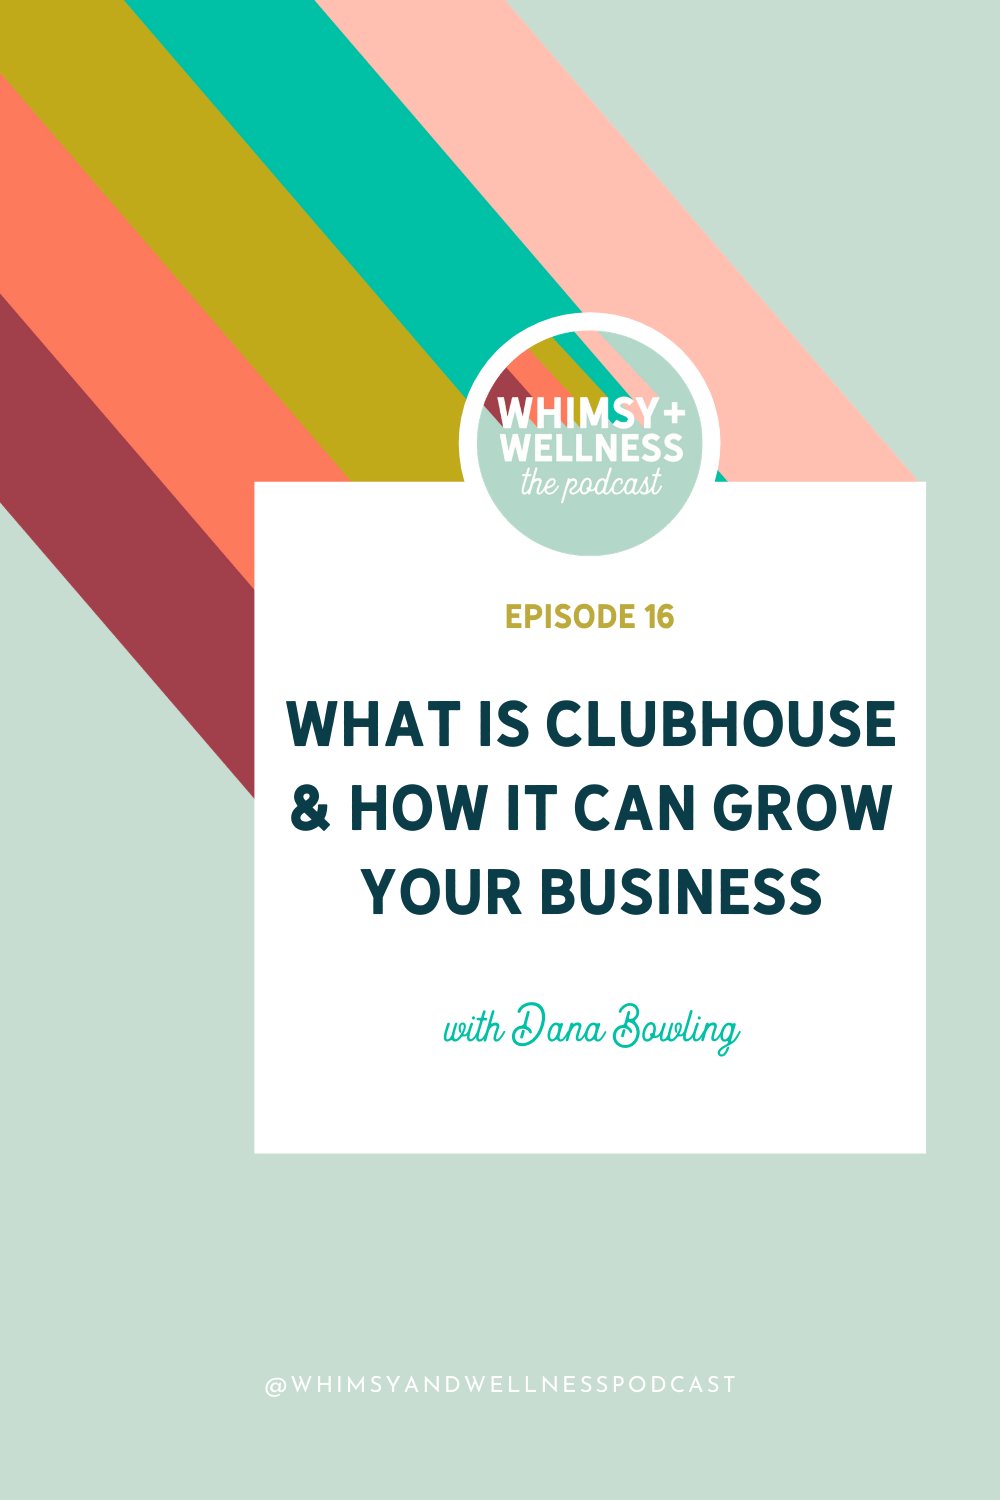 whimsy + wellness podcast ep 16 what is clubhouse